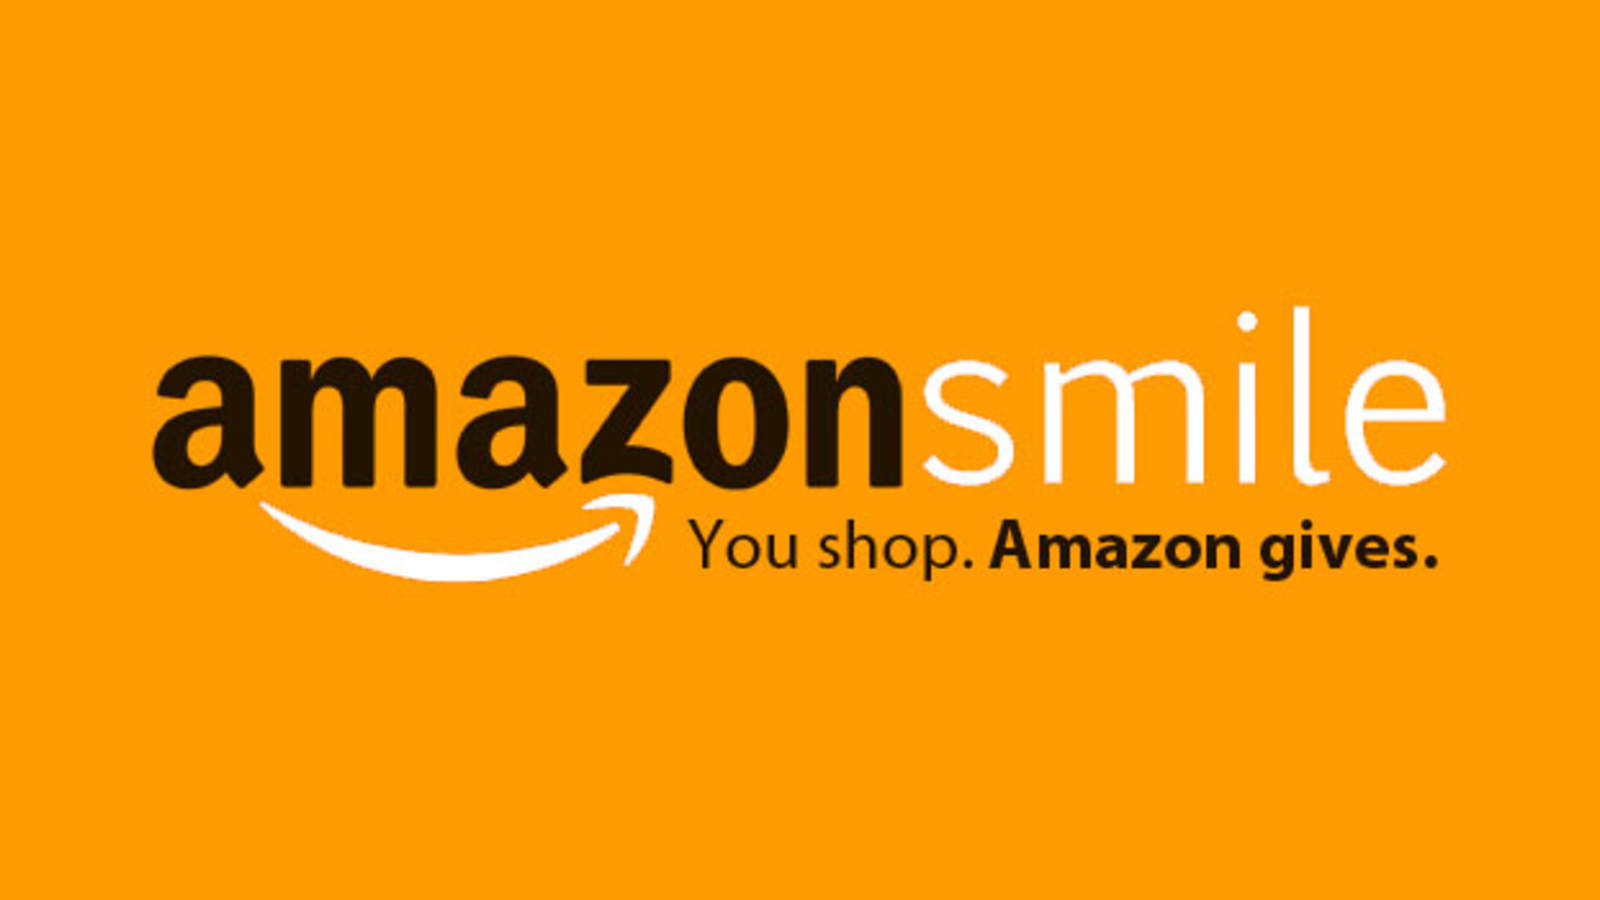 Go to Amazon Smile and select Brylan's Feat Foundation as your charity to support. Please make sure to log in to smile.amazon.com to make your purchases count.